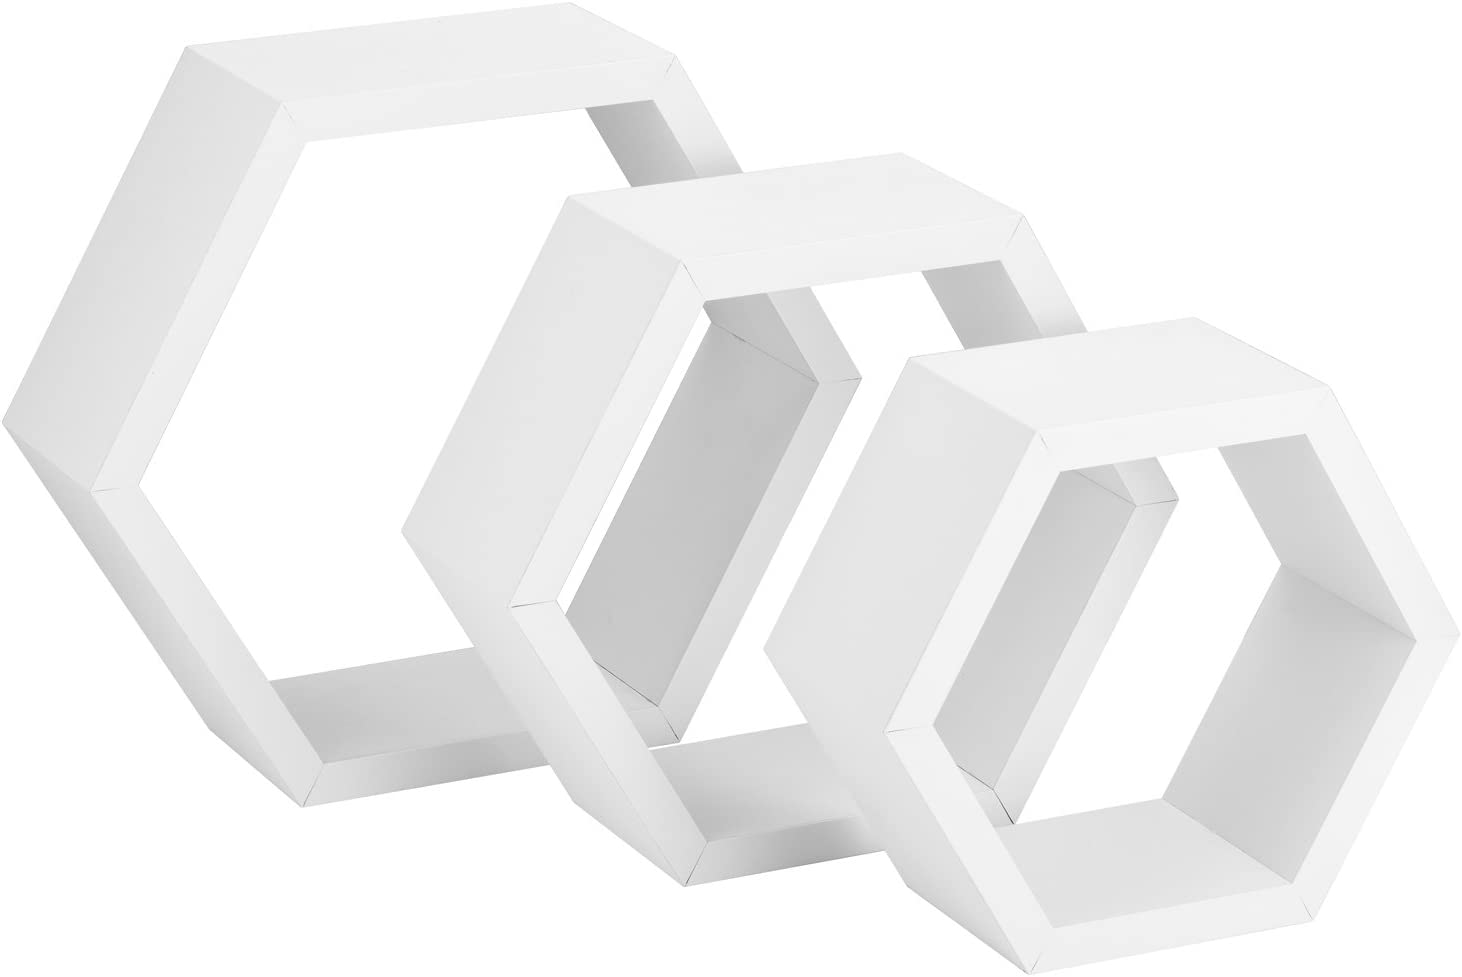 Halter Hexagonal Shaped Floating Shelves (White) for Wall/Room Decorative Display - Set of Three - Easy Installation,Screws & Hardware Included - Wood Veneer